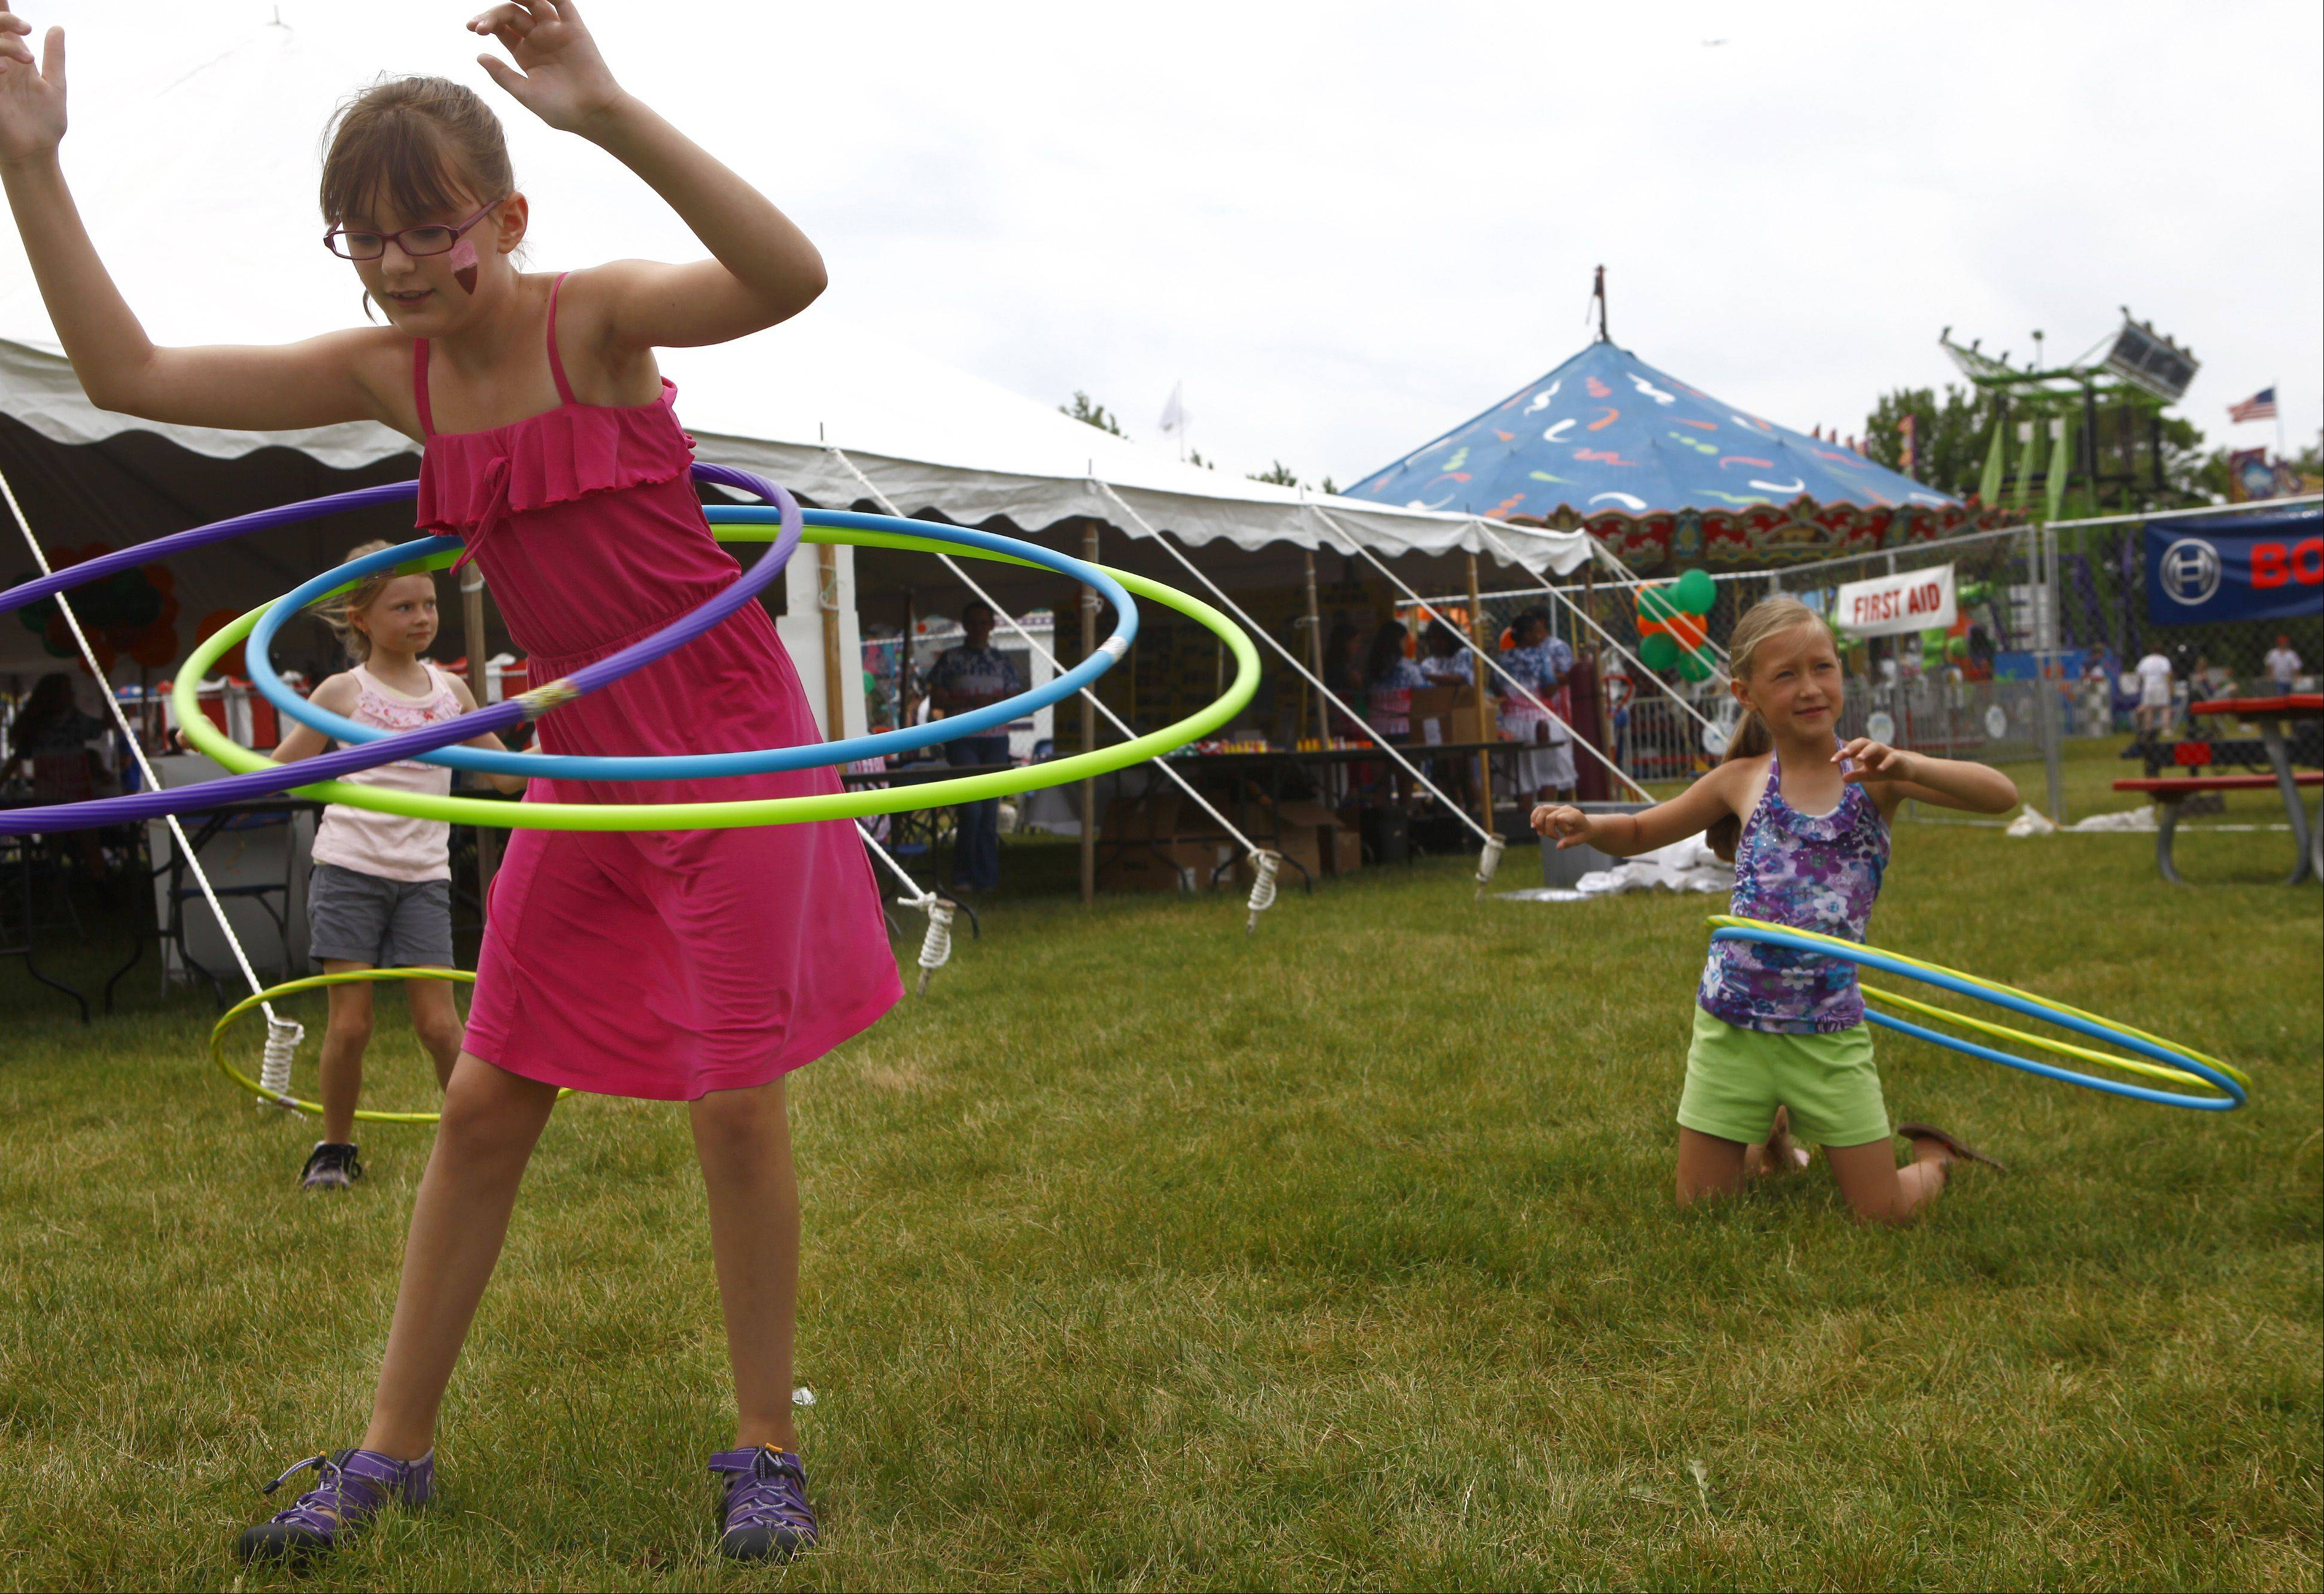 Samantha Goc, left, from Gilberts, practices with three hoola-hoops along with Julia Jacob from Mount Prospect during last year's festival.